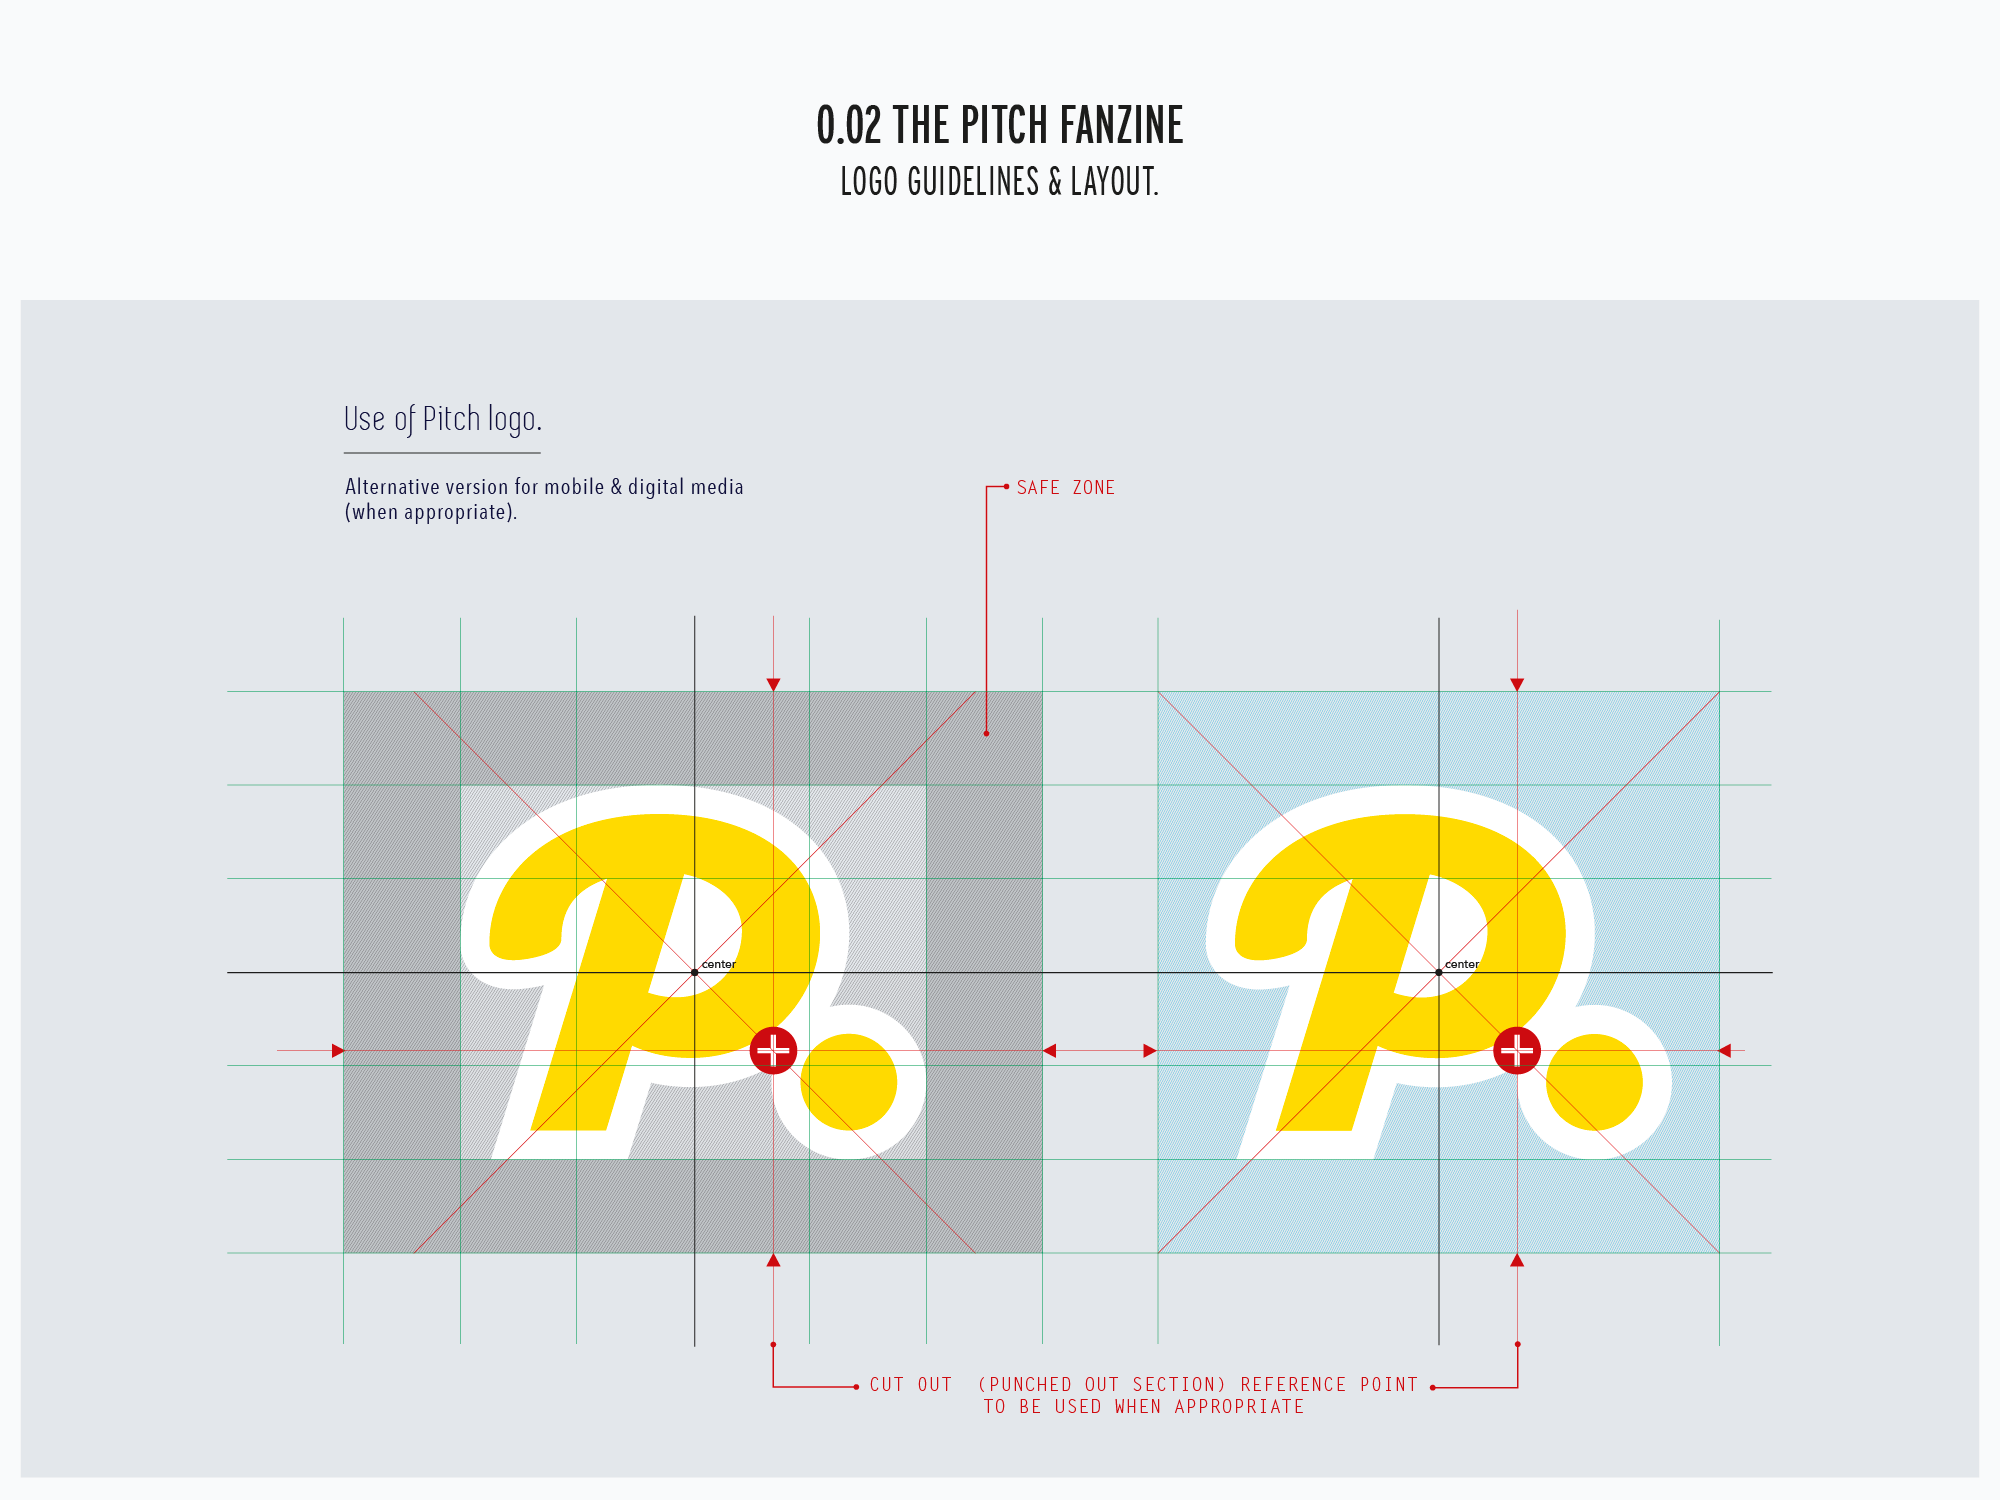 Pitch logo adapted for mobile layout and guides.